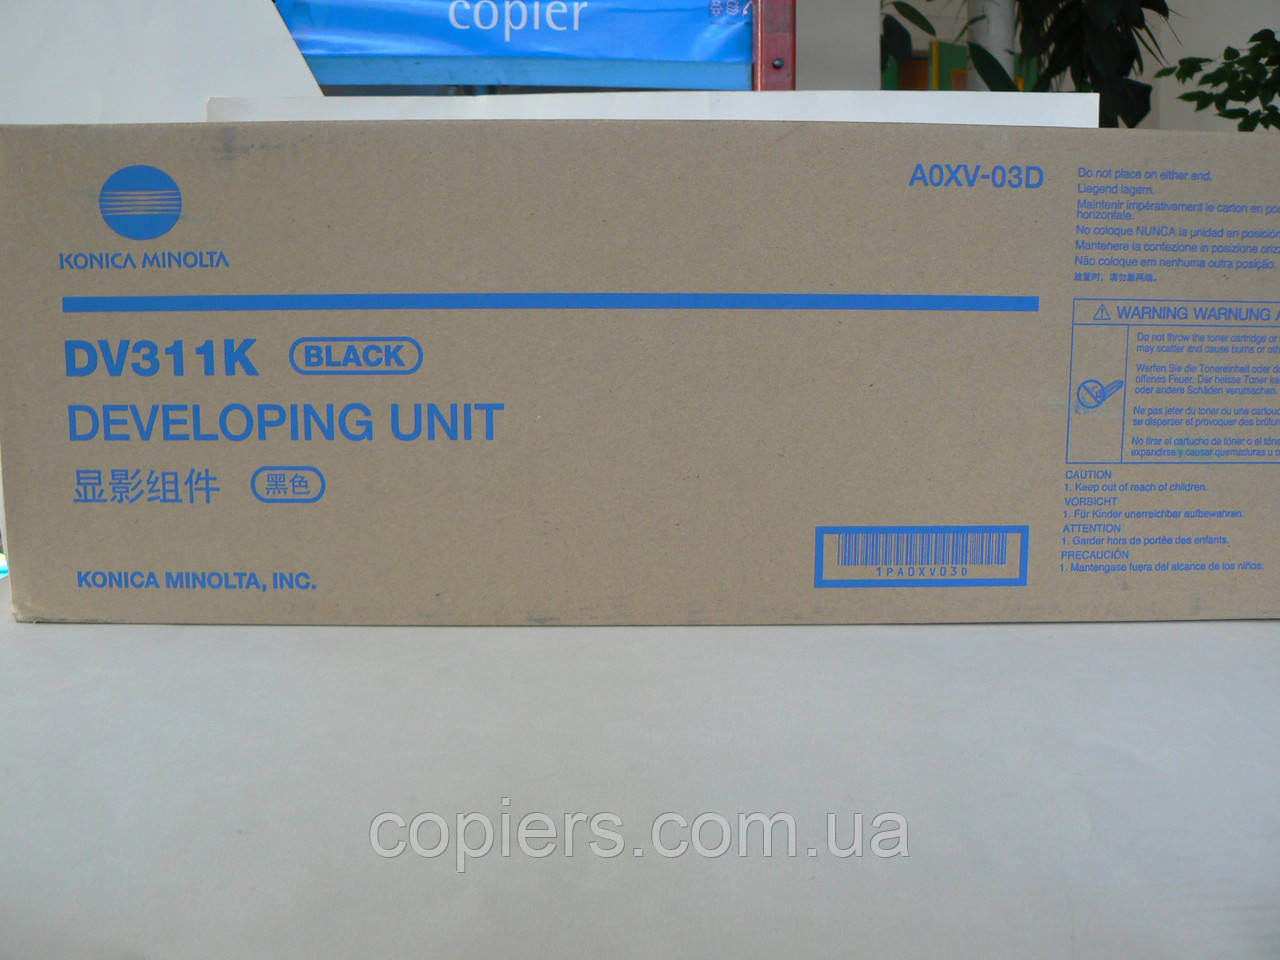 DV311 K Блок проявки Developing Unit for Bizhub C360 C280 C220, Konica Minolta